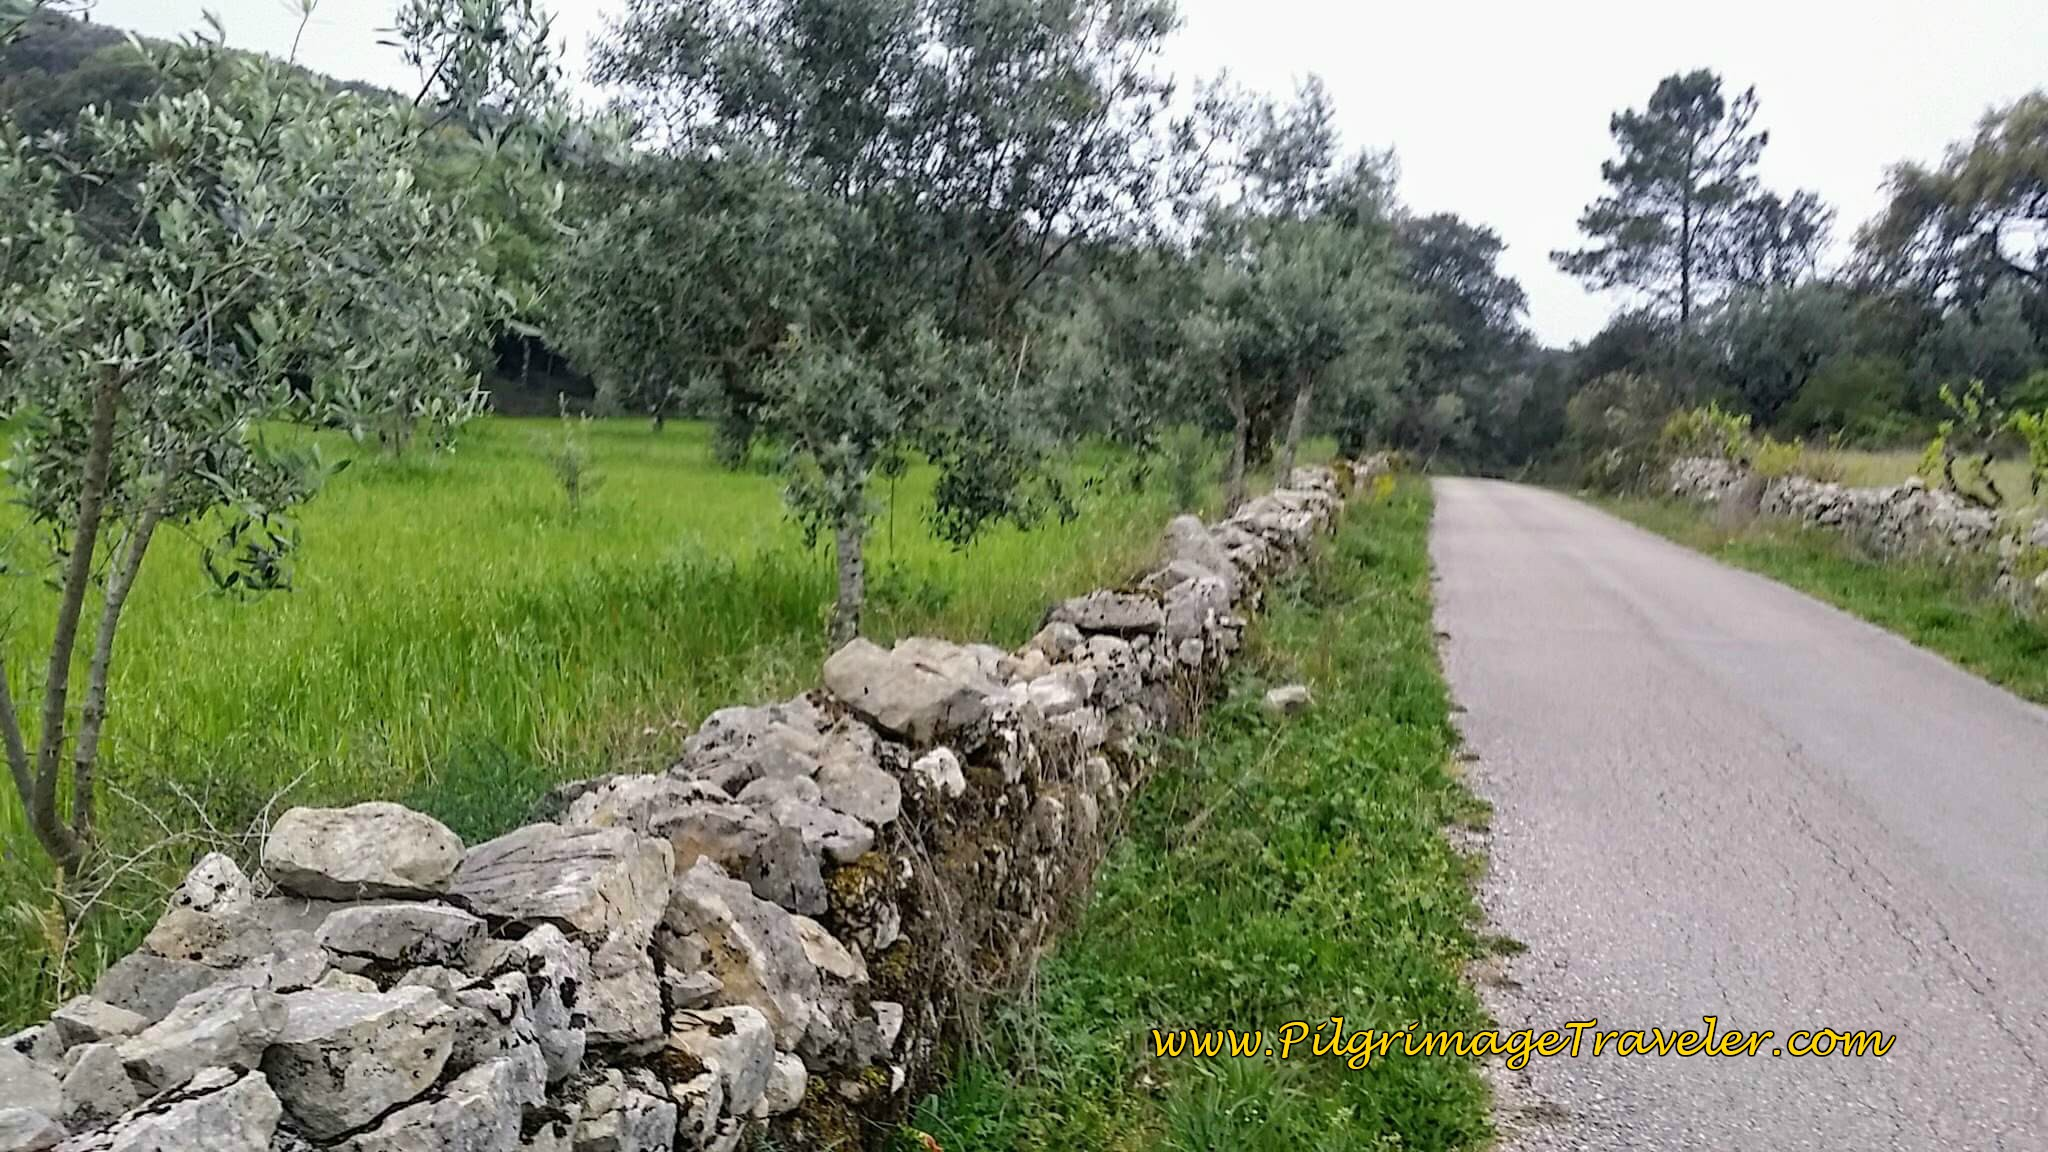 Olive Trees and Stone Walls - Another Common Sight